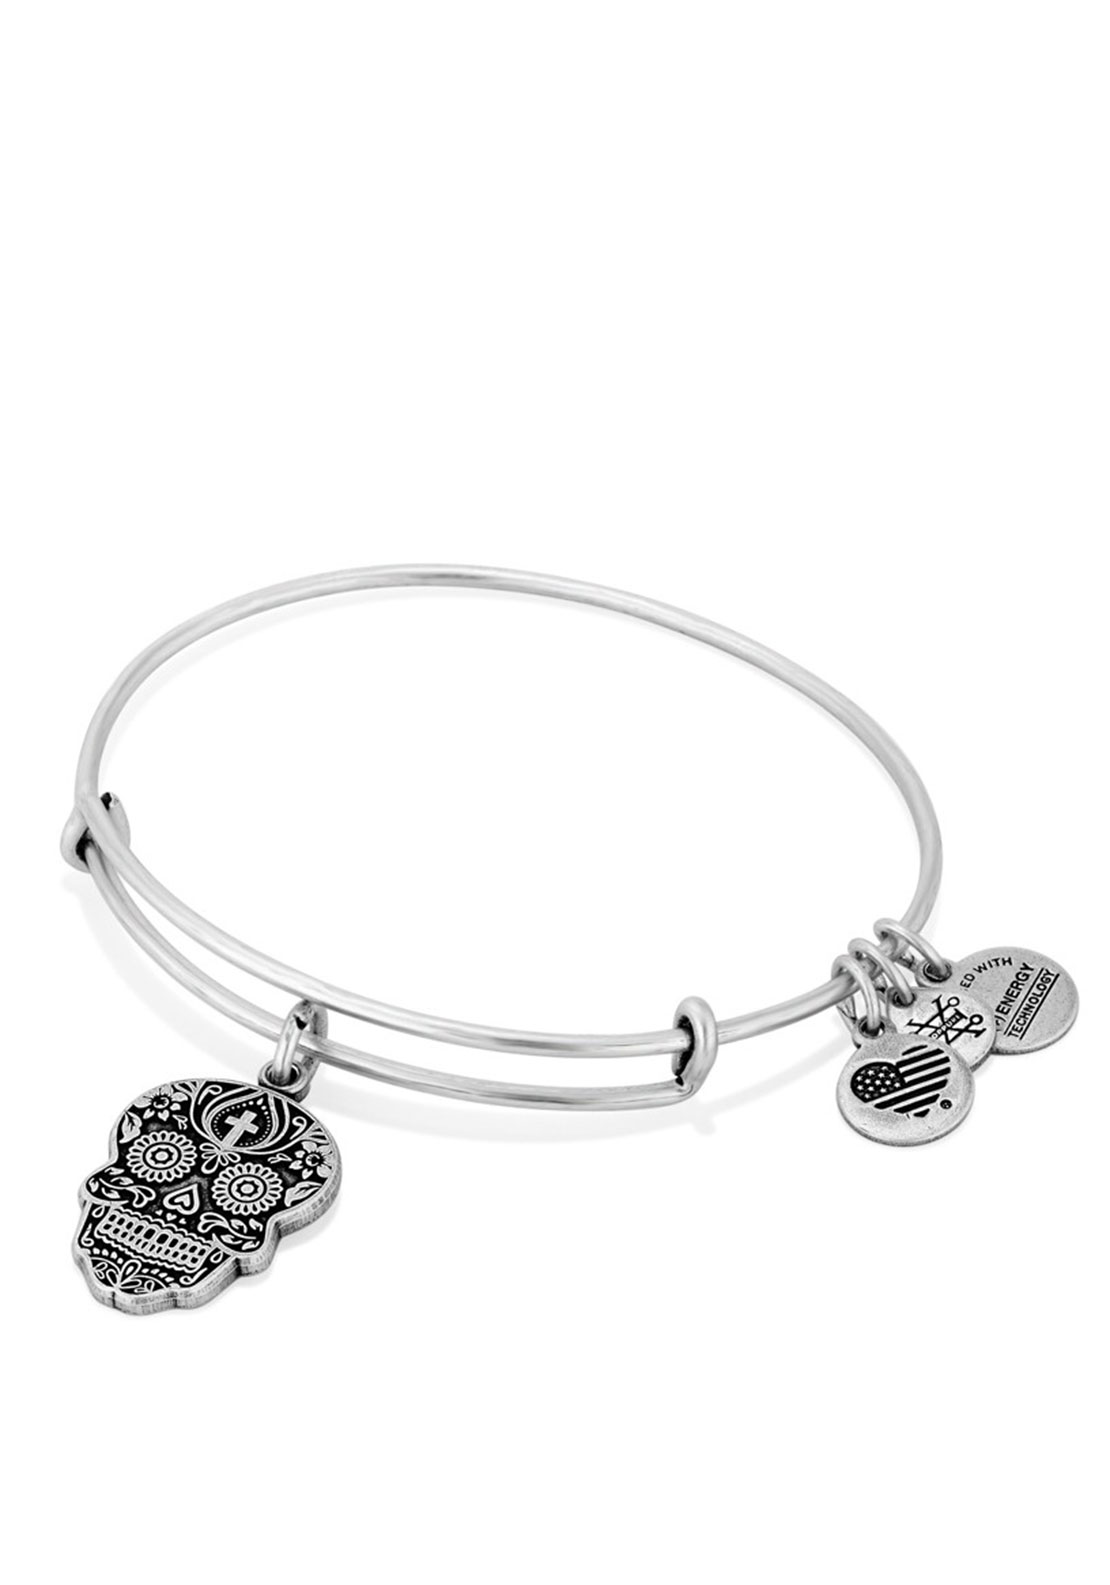 Alex and Ani Calavera Charm Bangle, Silver